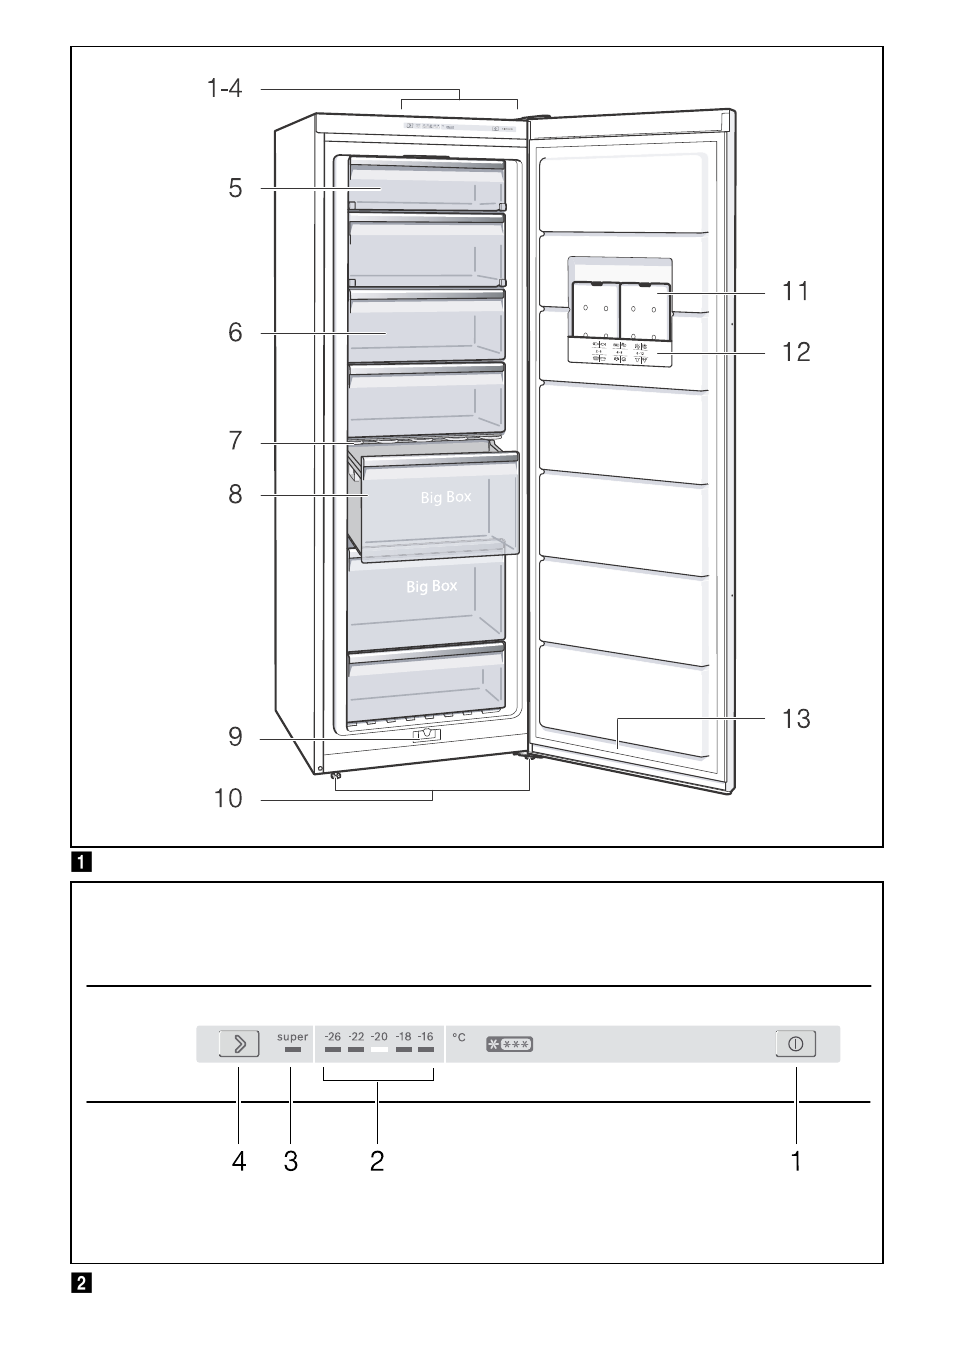 bosch gsv33vw30 cong lateur armoire confort user manual page 91 94 also for gsv29vw30. Black Bedroom Furniture Sets. Home Design Ideas